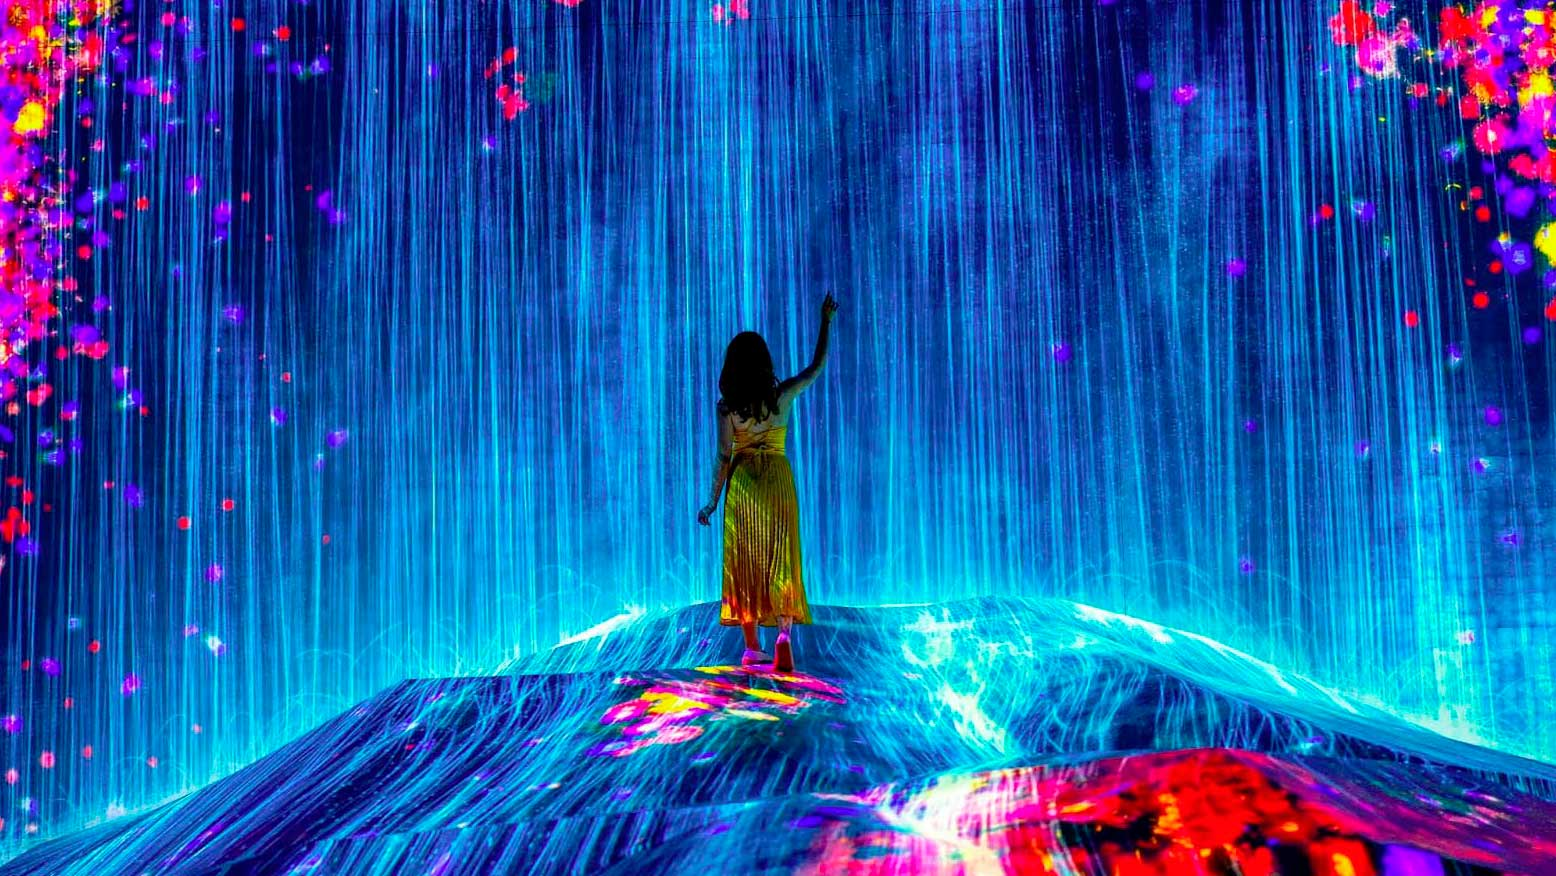 Garota olhando obra do Mori Building Digital Art Museum: teamLab Borderless.